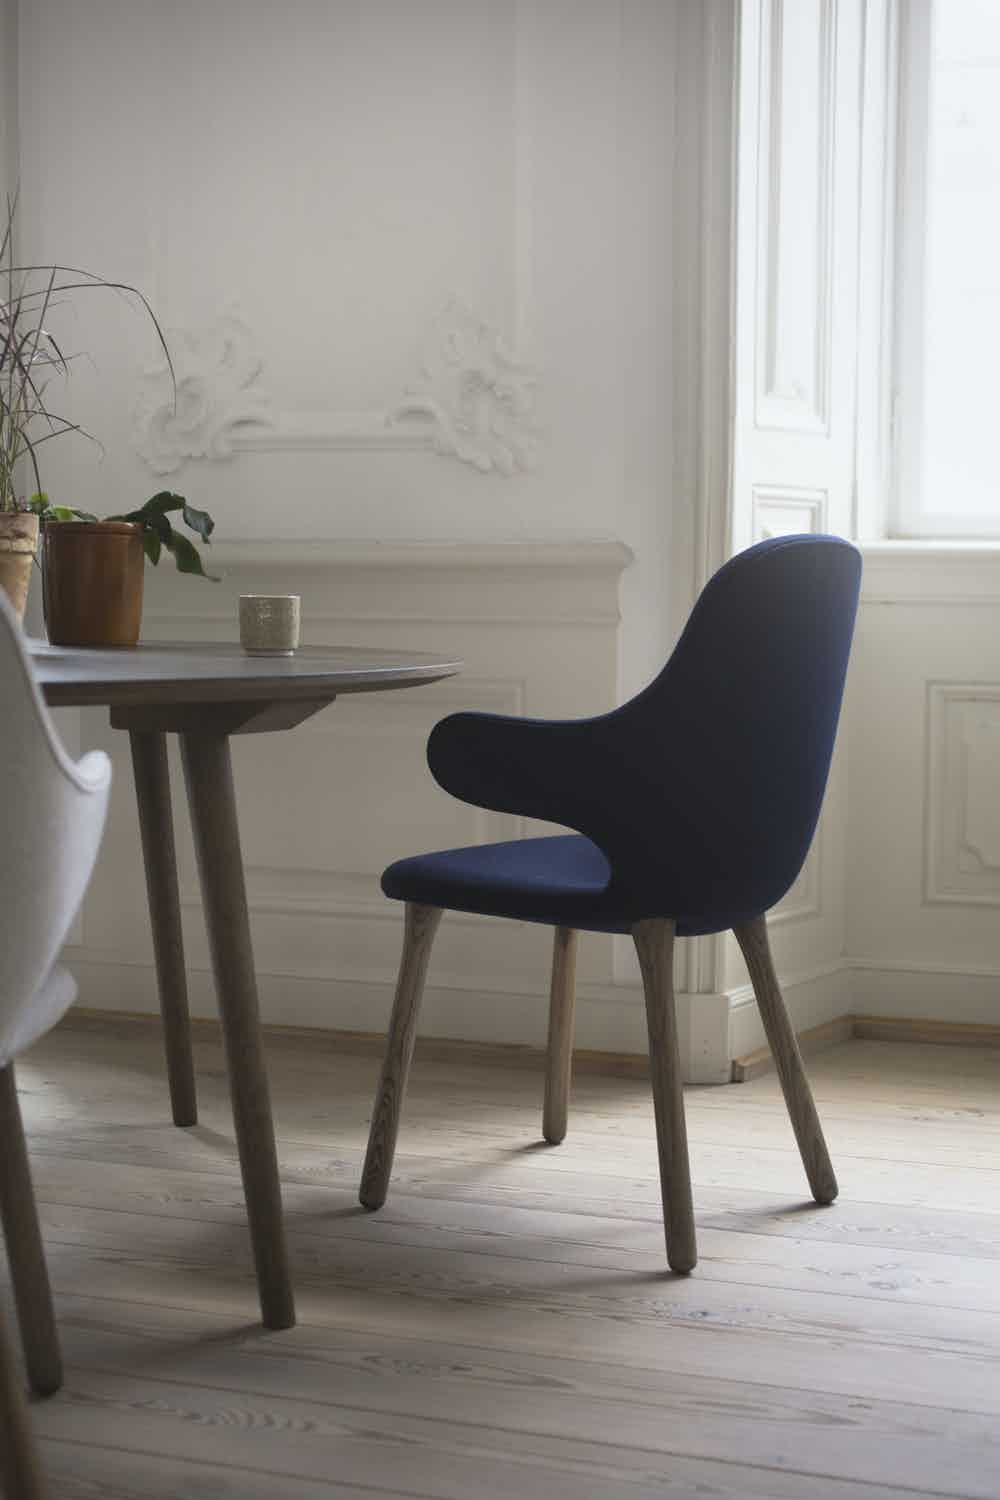 Tradition catch chair jh1 insitu blue back haute living